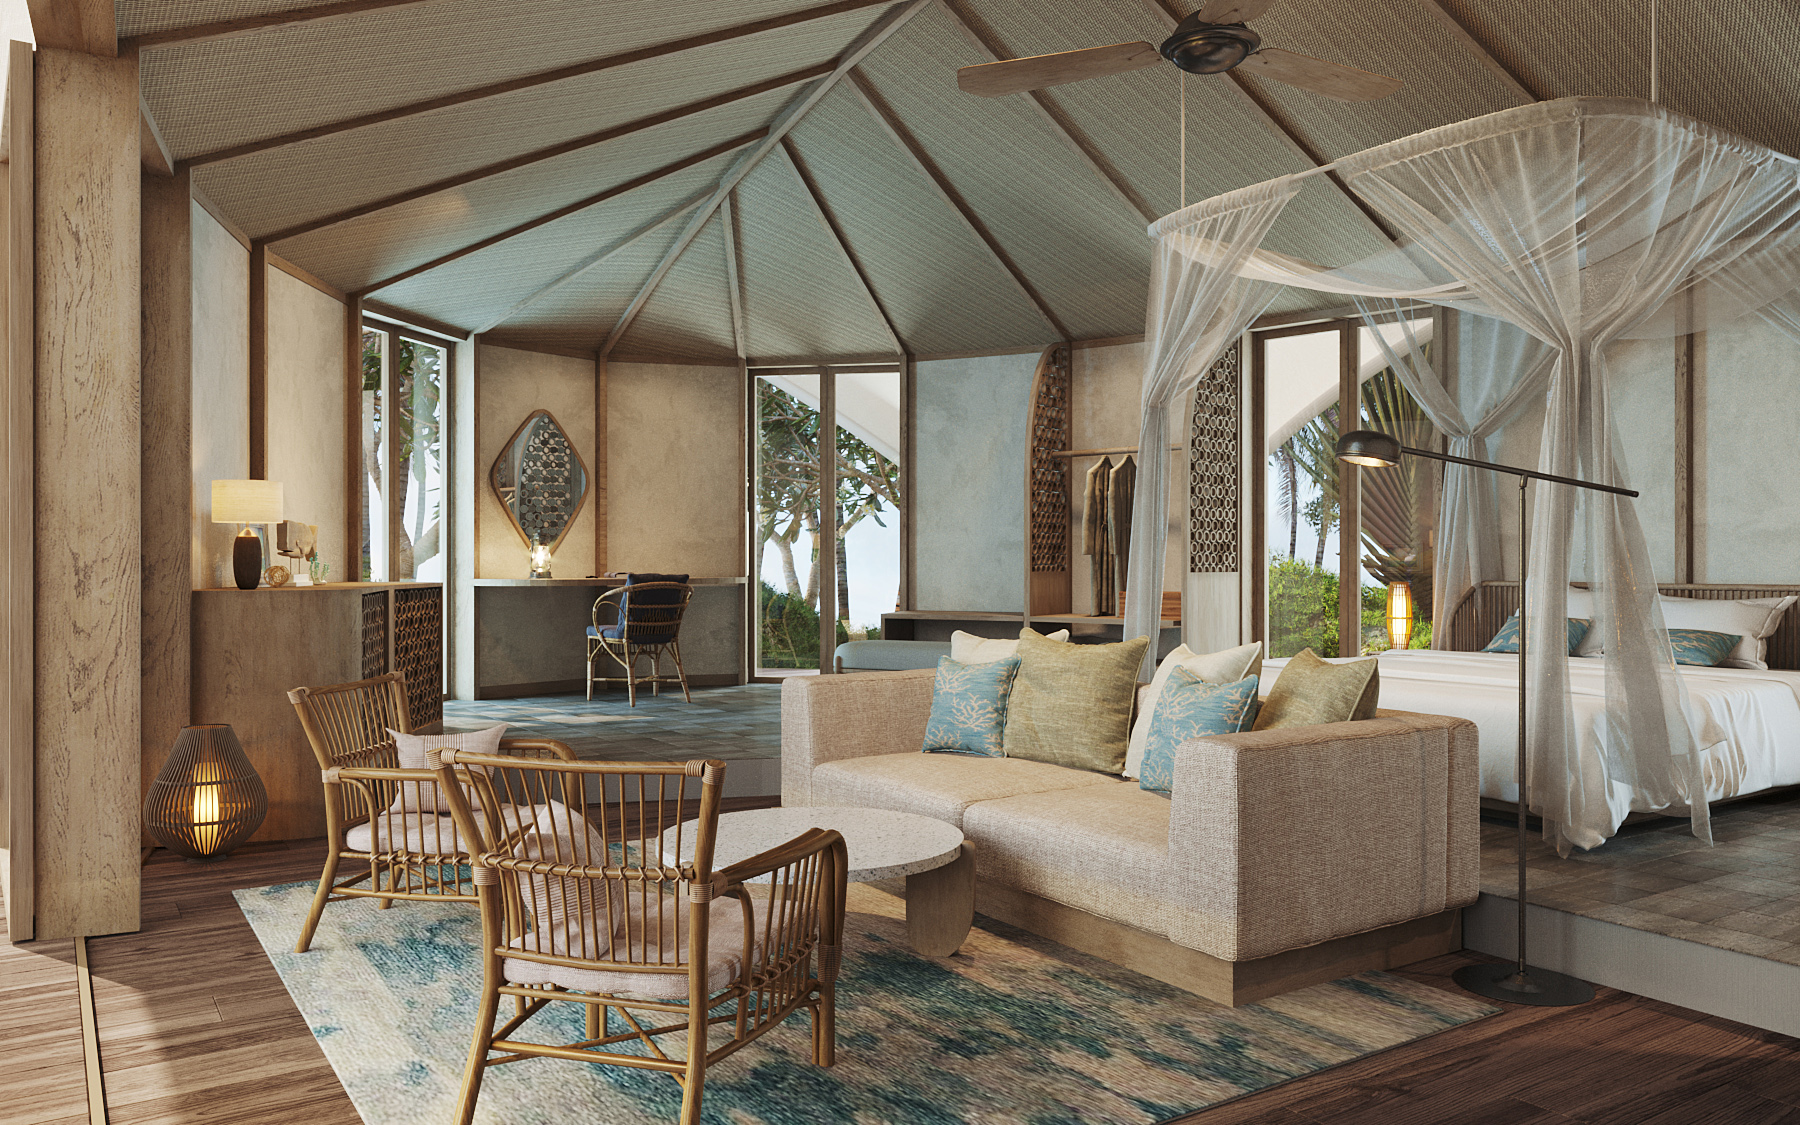 lodge-experience-exclusive-interior-design-tropical